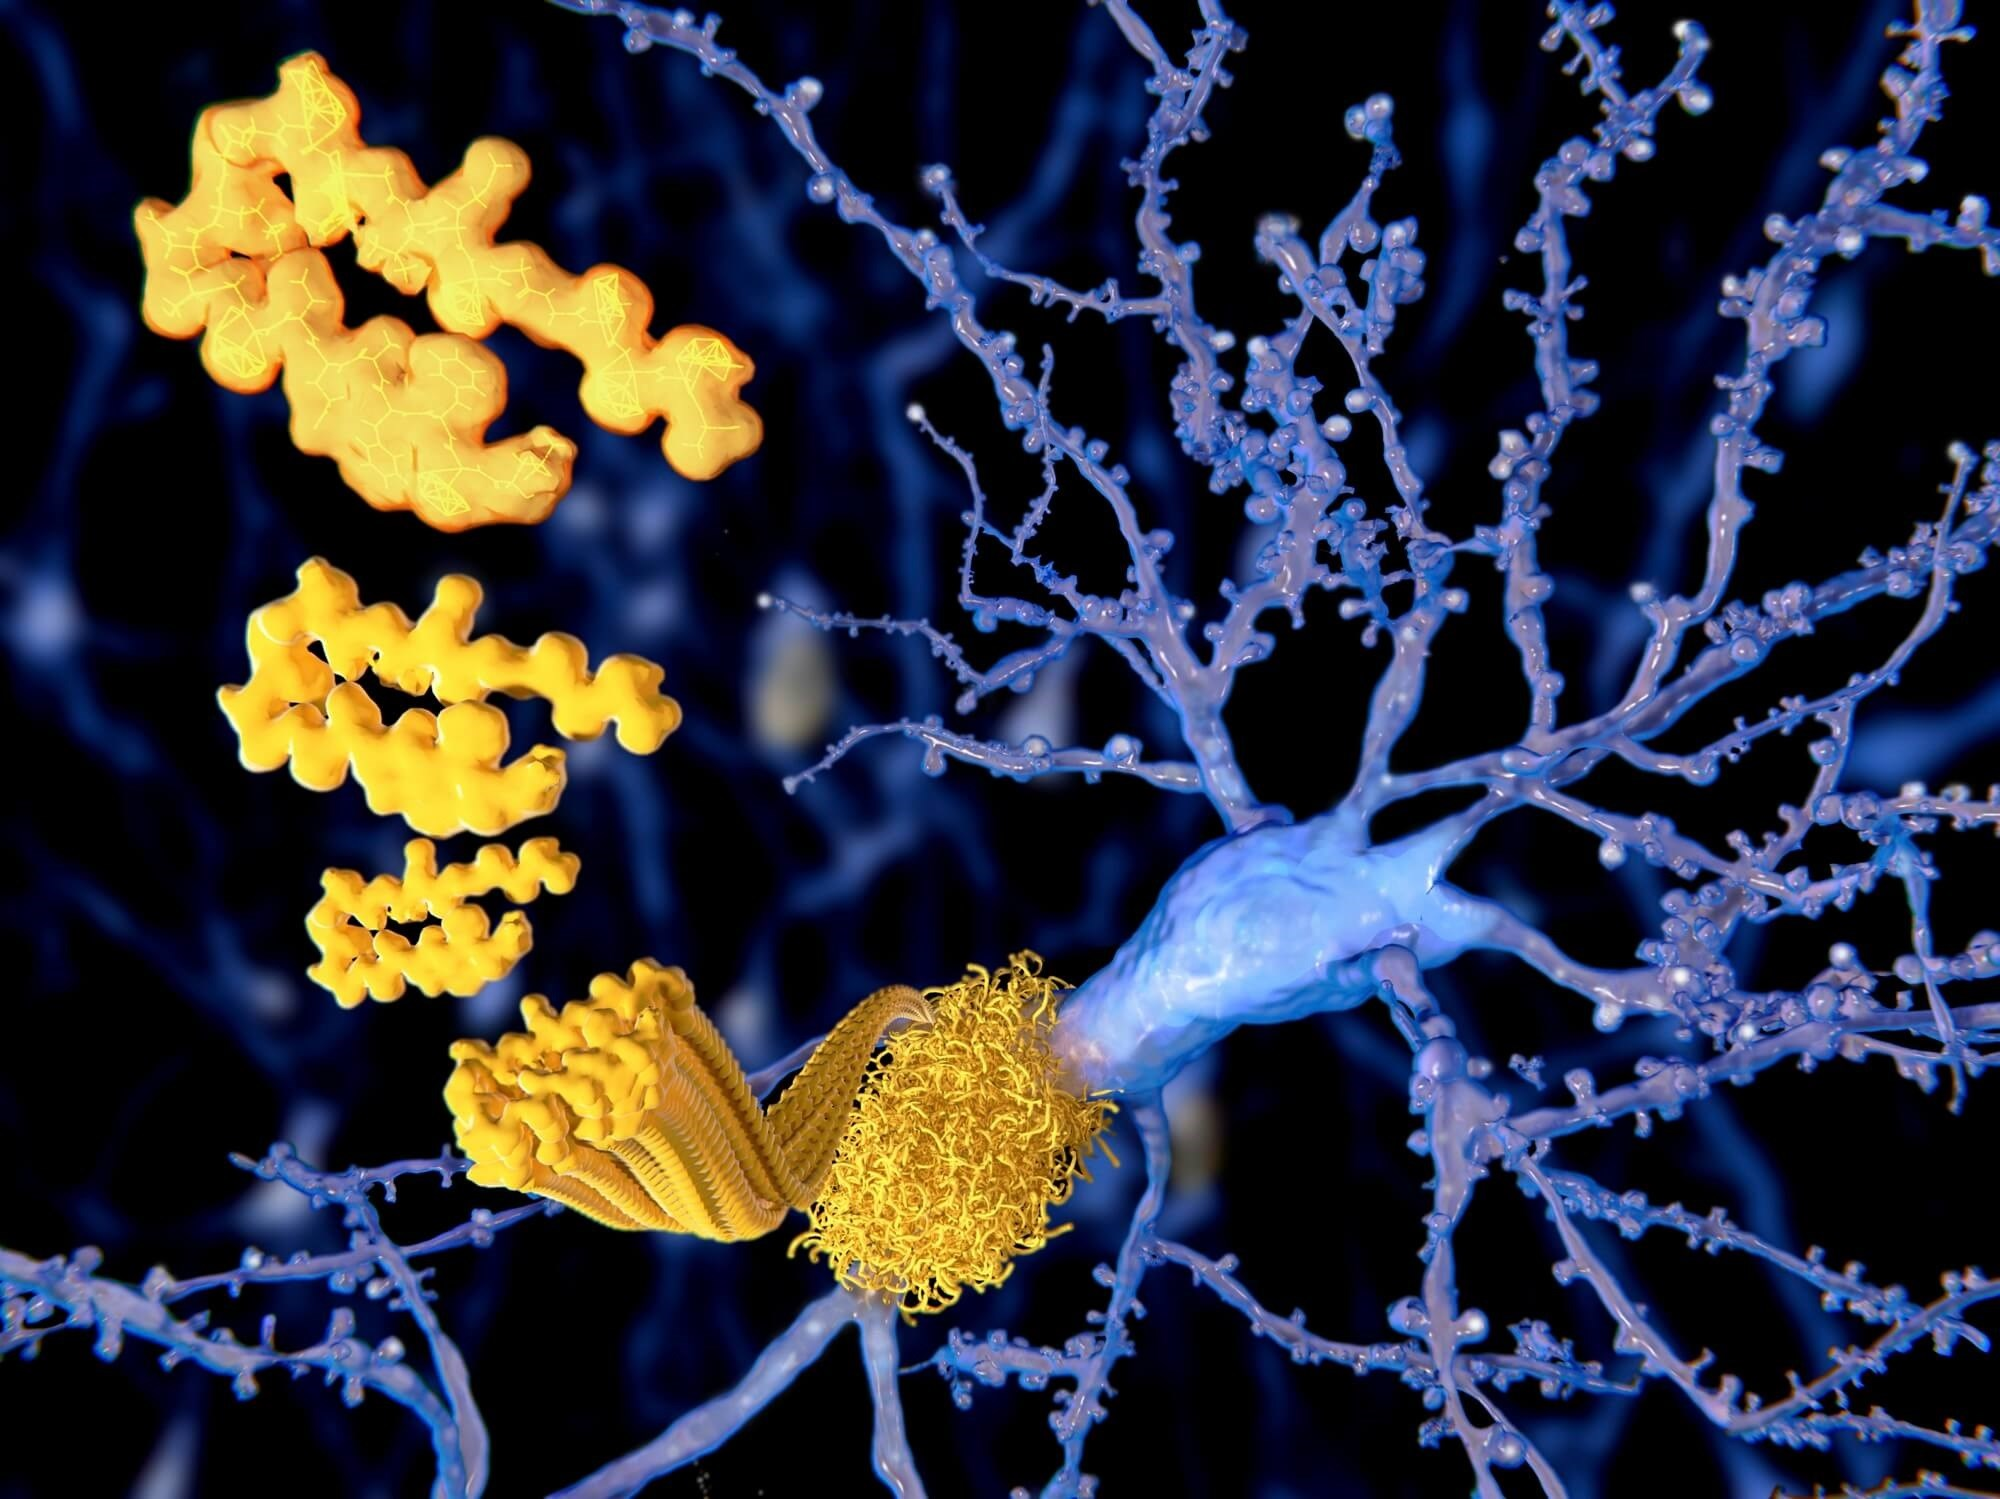 Investigators examined the onset, sequence, and rate of progression of biomarker and clinical measures across the spectrum of Alzheimer disease, using the Dominantly Inherited Alzheimer Network study.